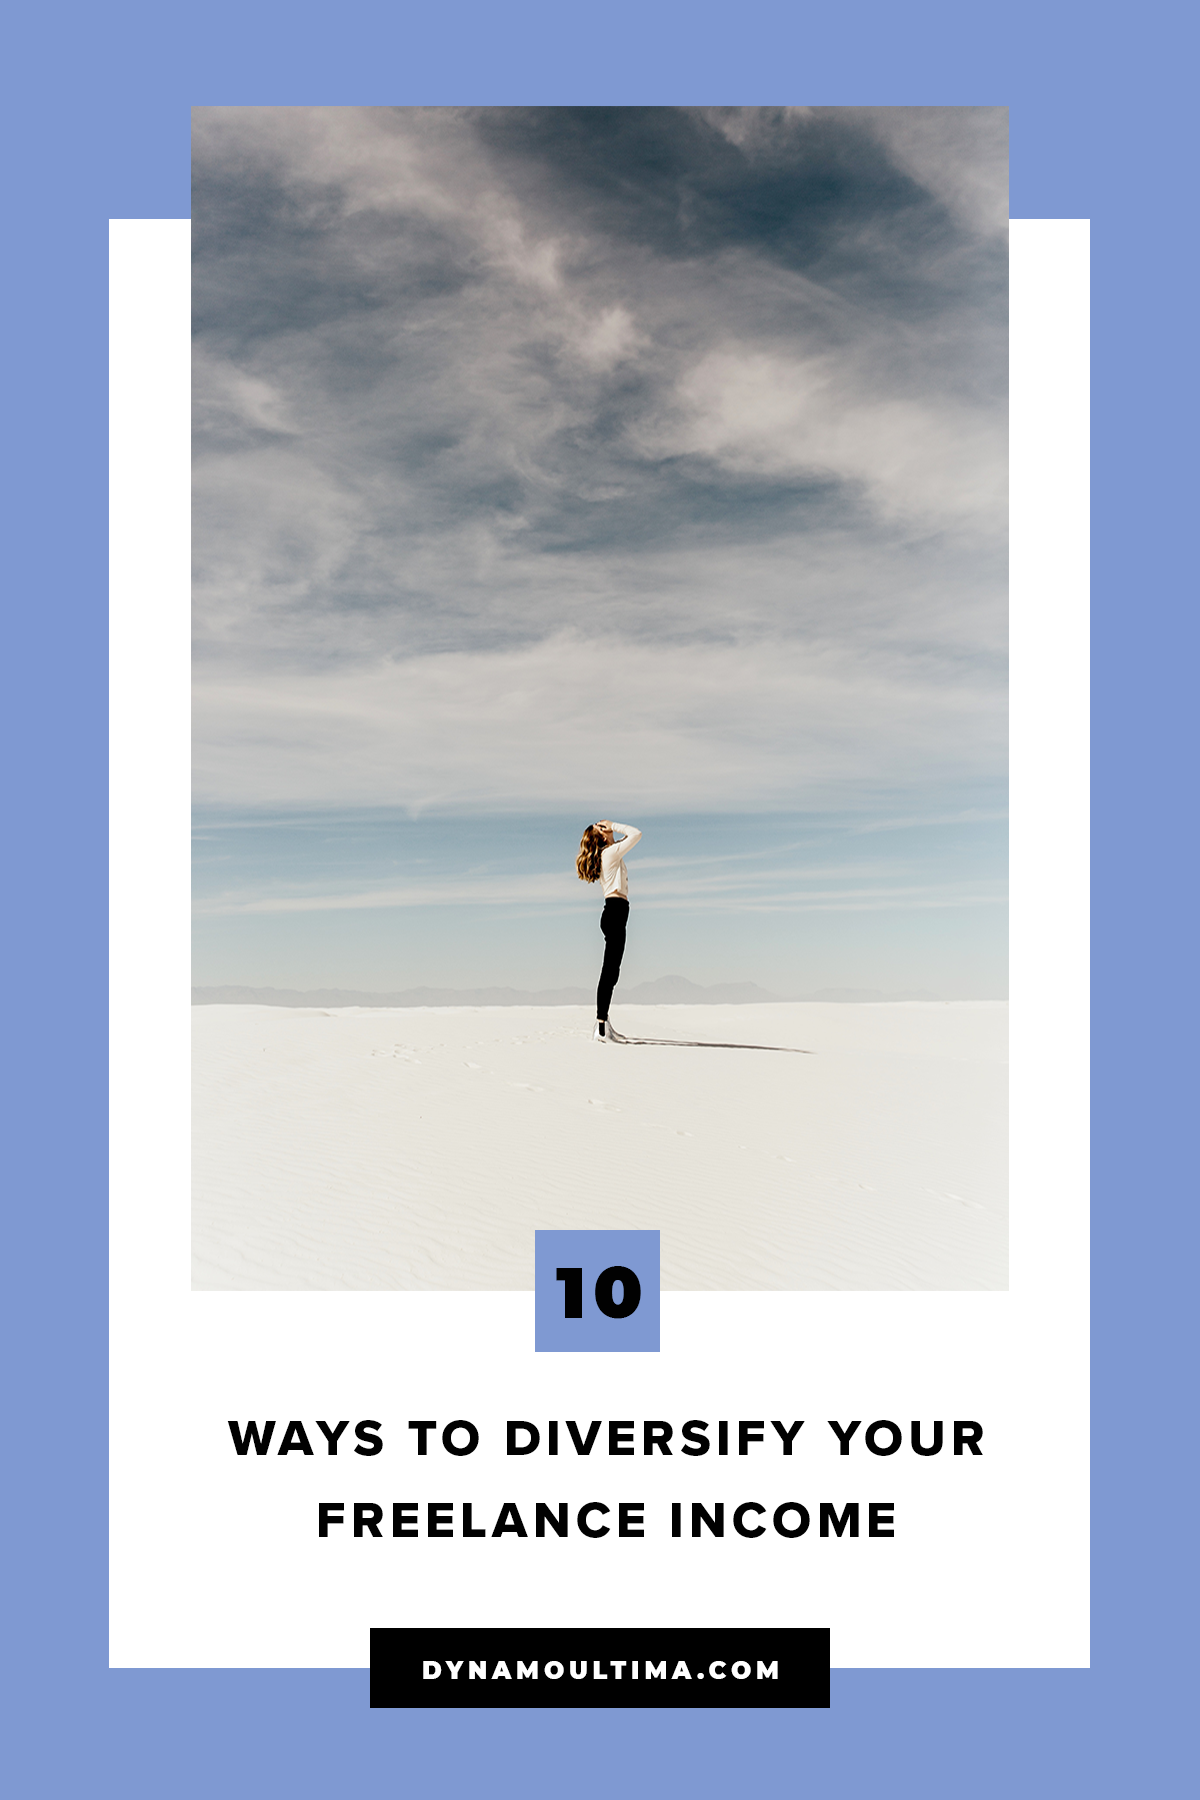 10-ways-to-diversify-your-freelance-income.png